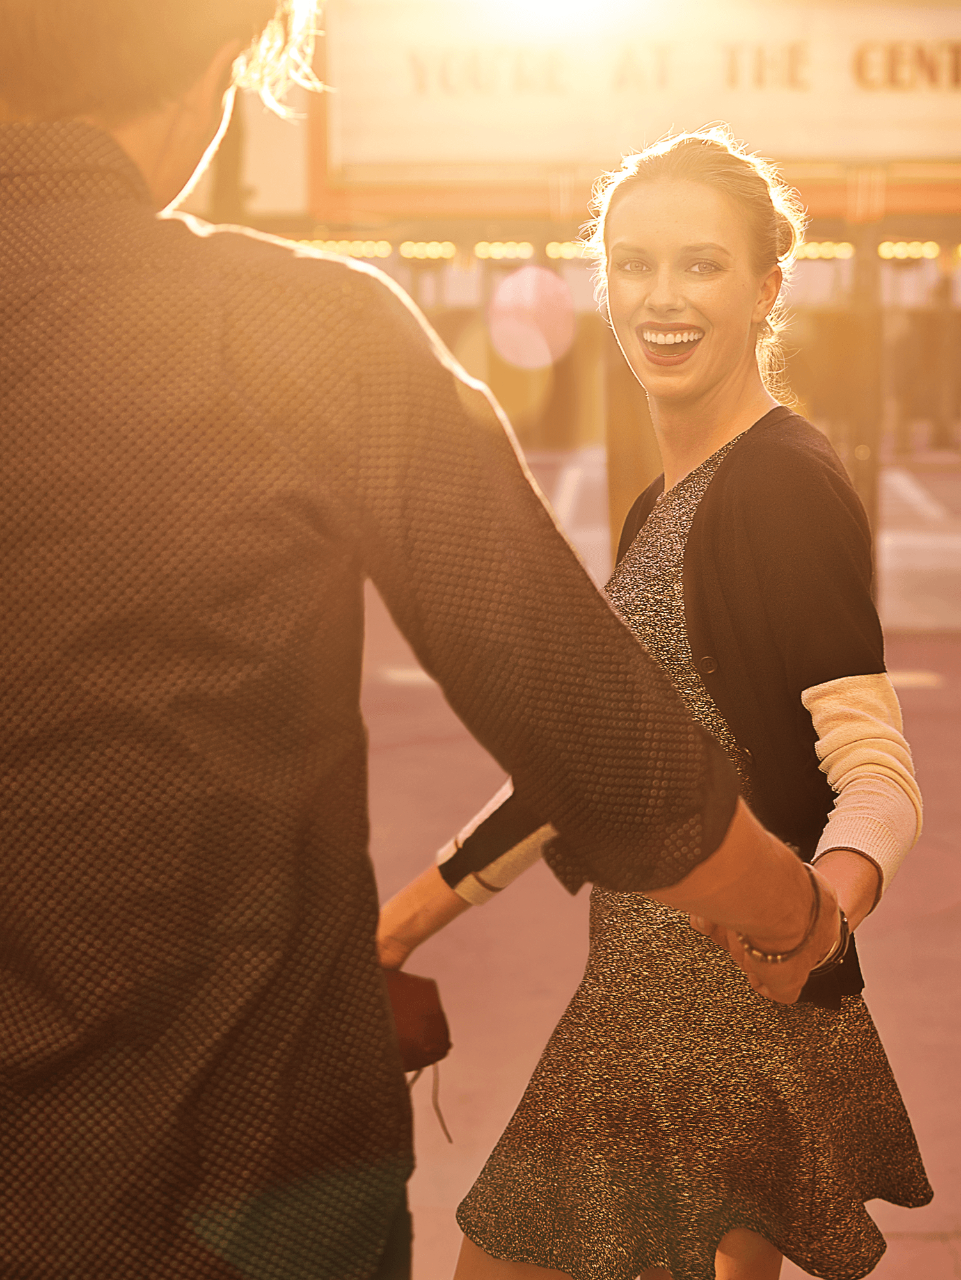 Take advantage of our mall programs for additional discounts, services, and information.